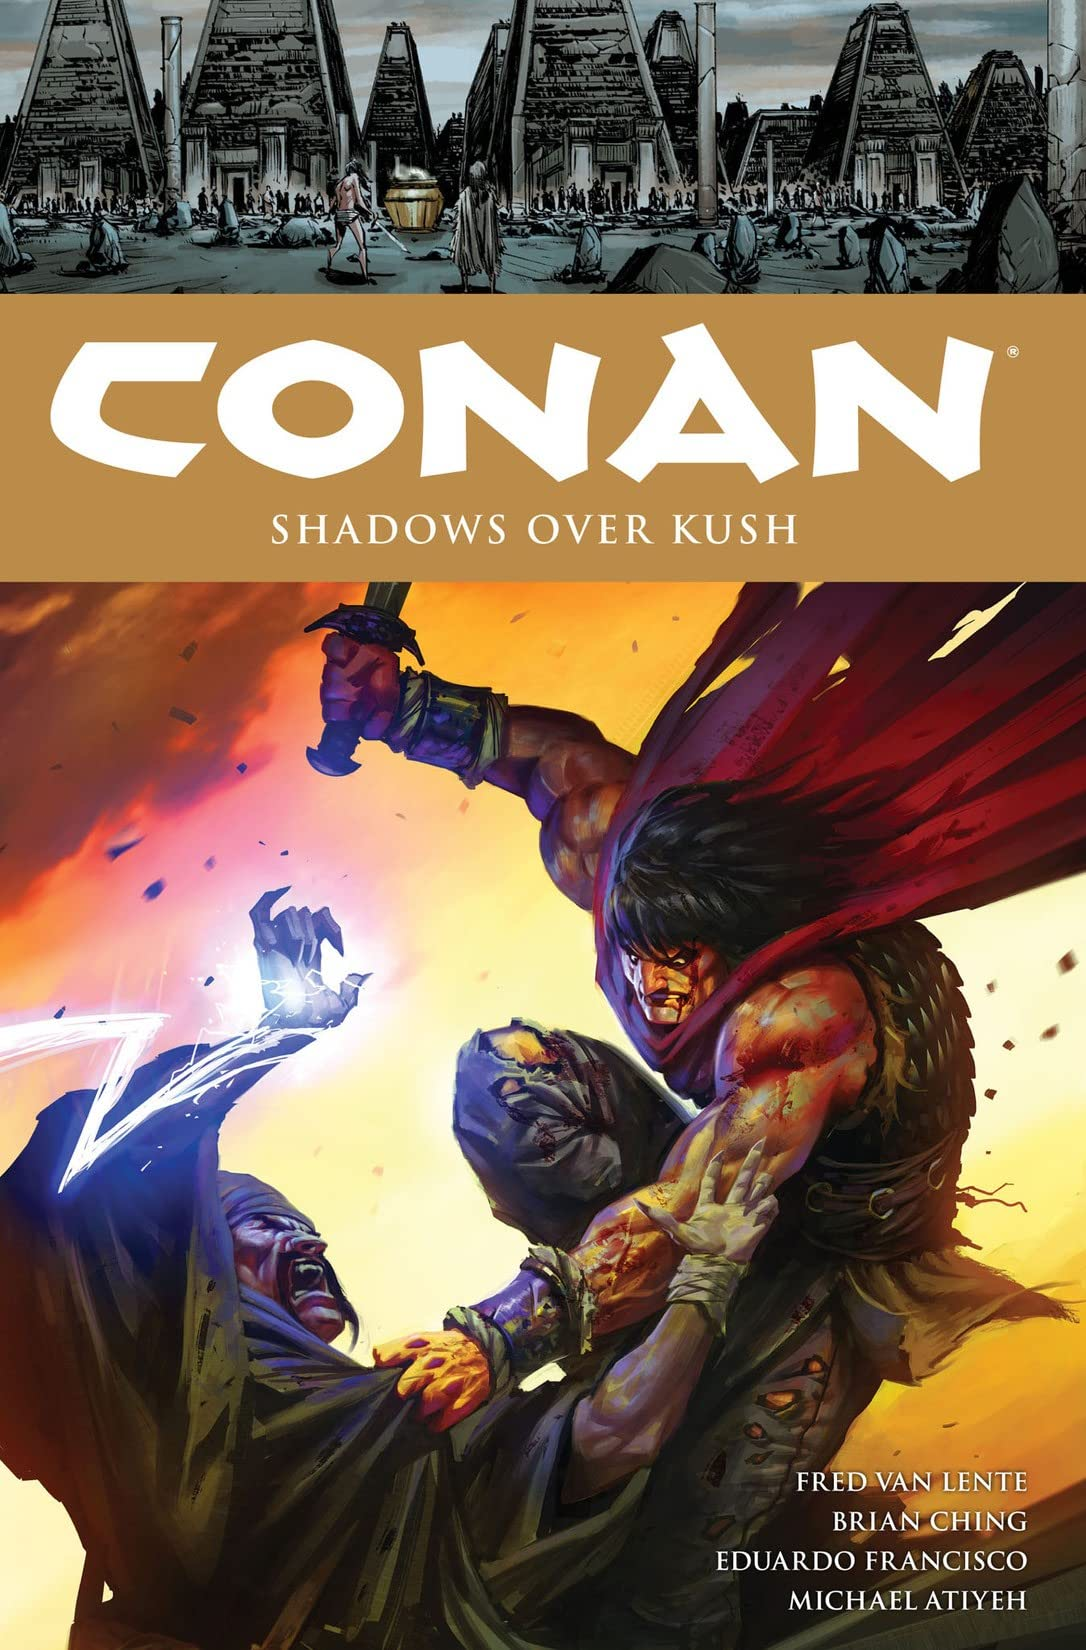 Conan Vol. 17: Shadows Over Kush